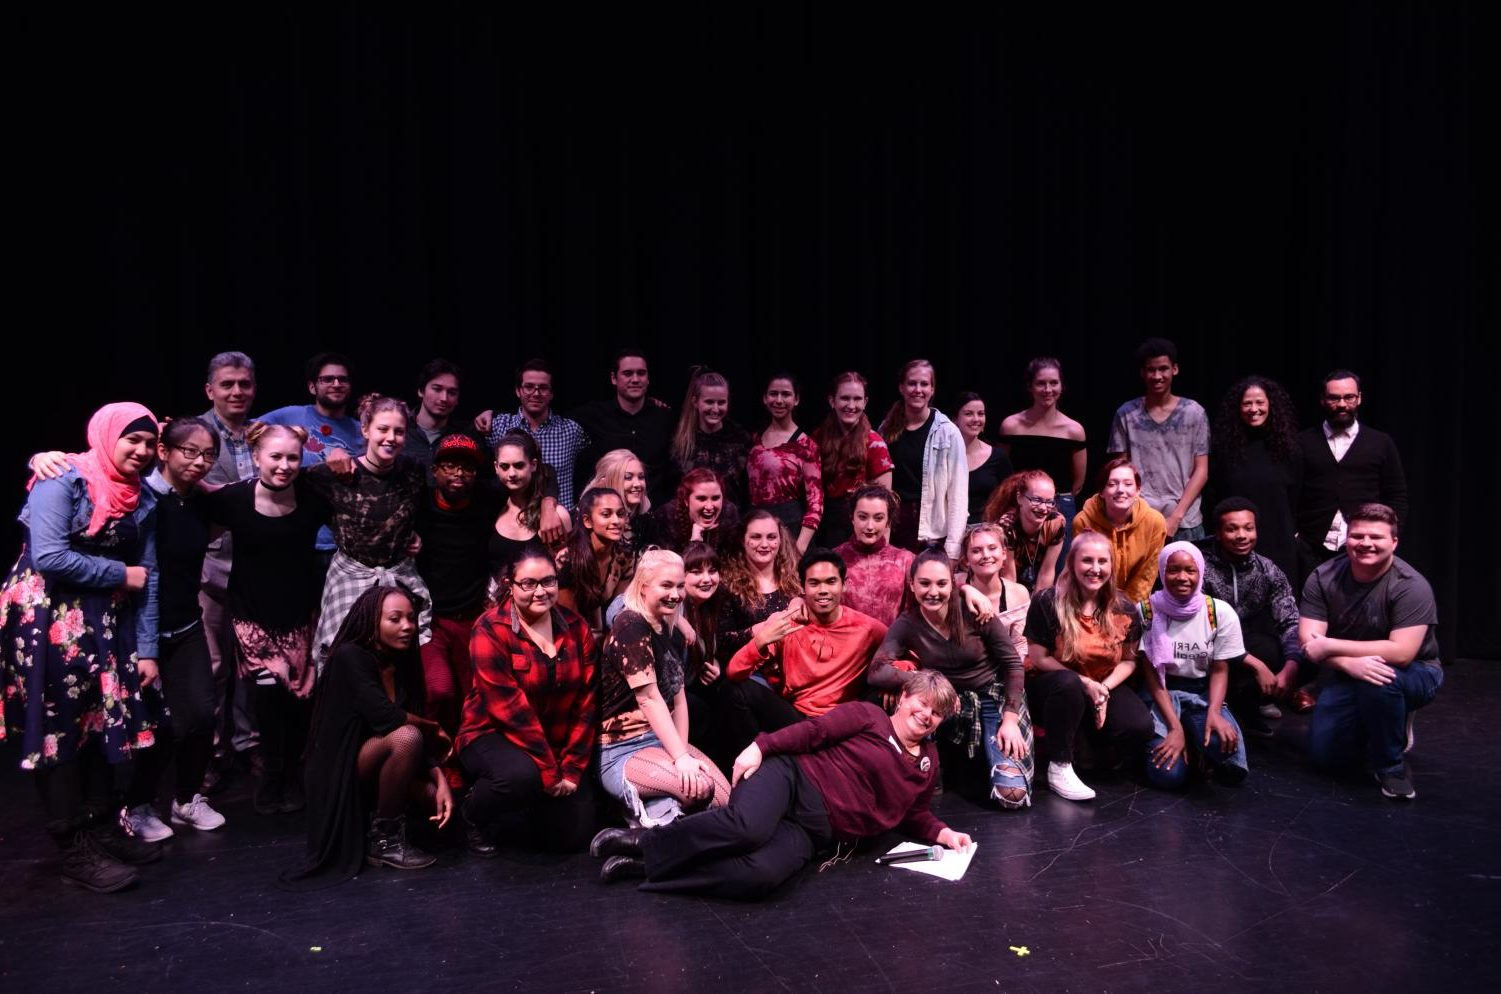 All the participants of Nations United took a group photo after the show